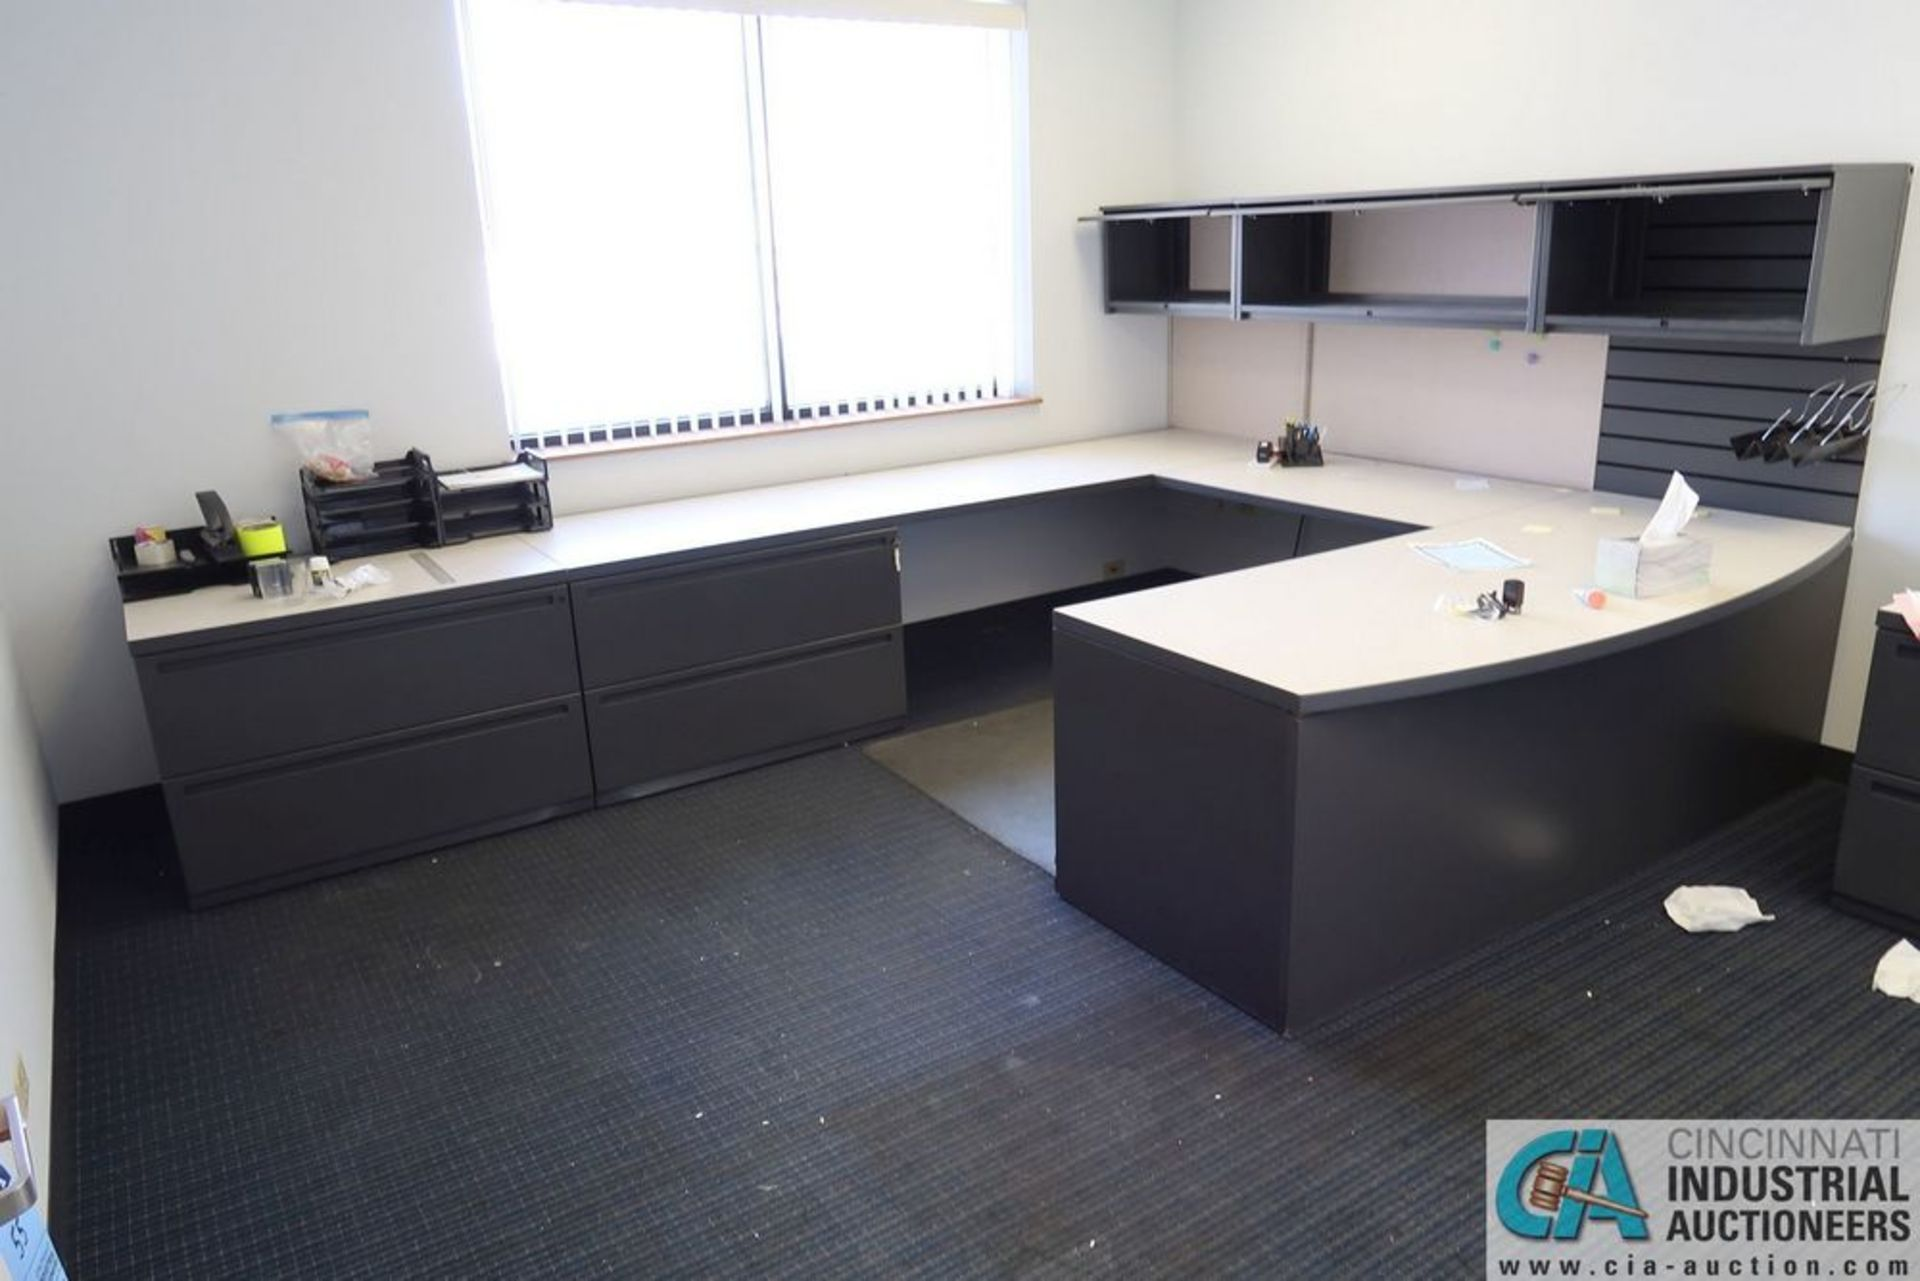 CONTENTS OF OFFICE INCLUDING U-SHAPED DESK, TABLE AND CABINET **OFFICE FURNITURE ONLY - NO